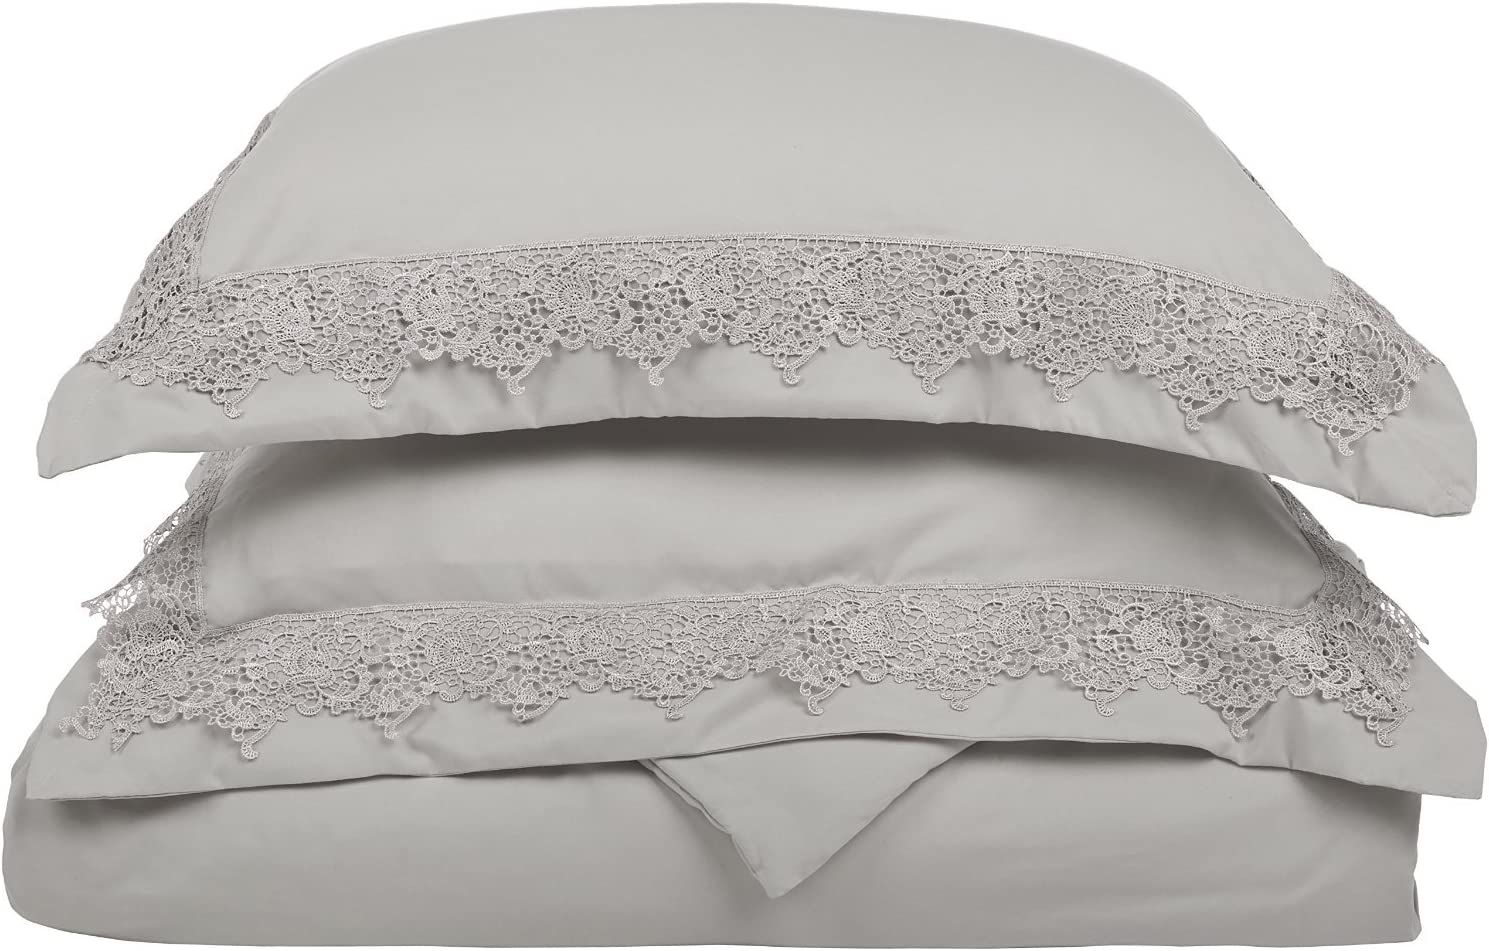 SUPERIOR Regal Lace Embroidery Microfiber Duvet Cover Set, Gift Box, Full/Queen, Grey